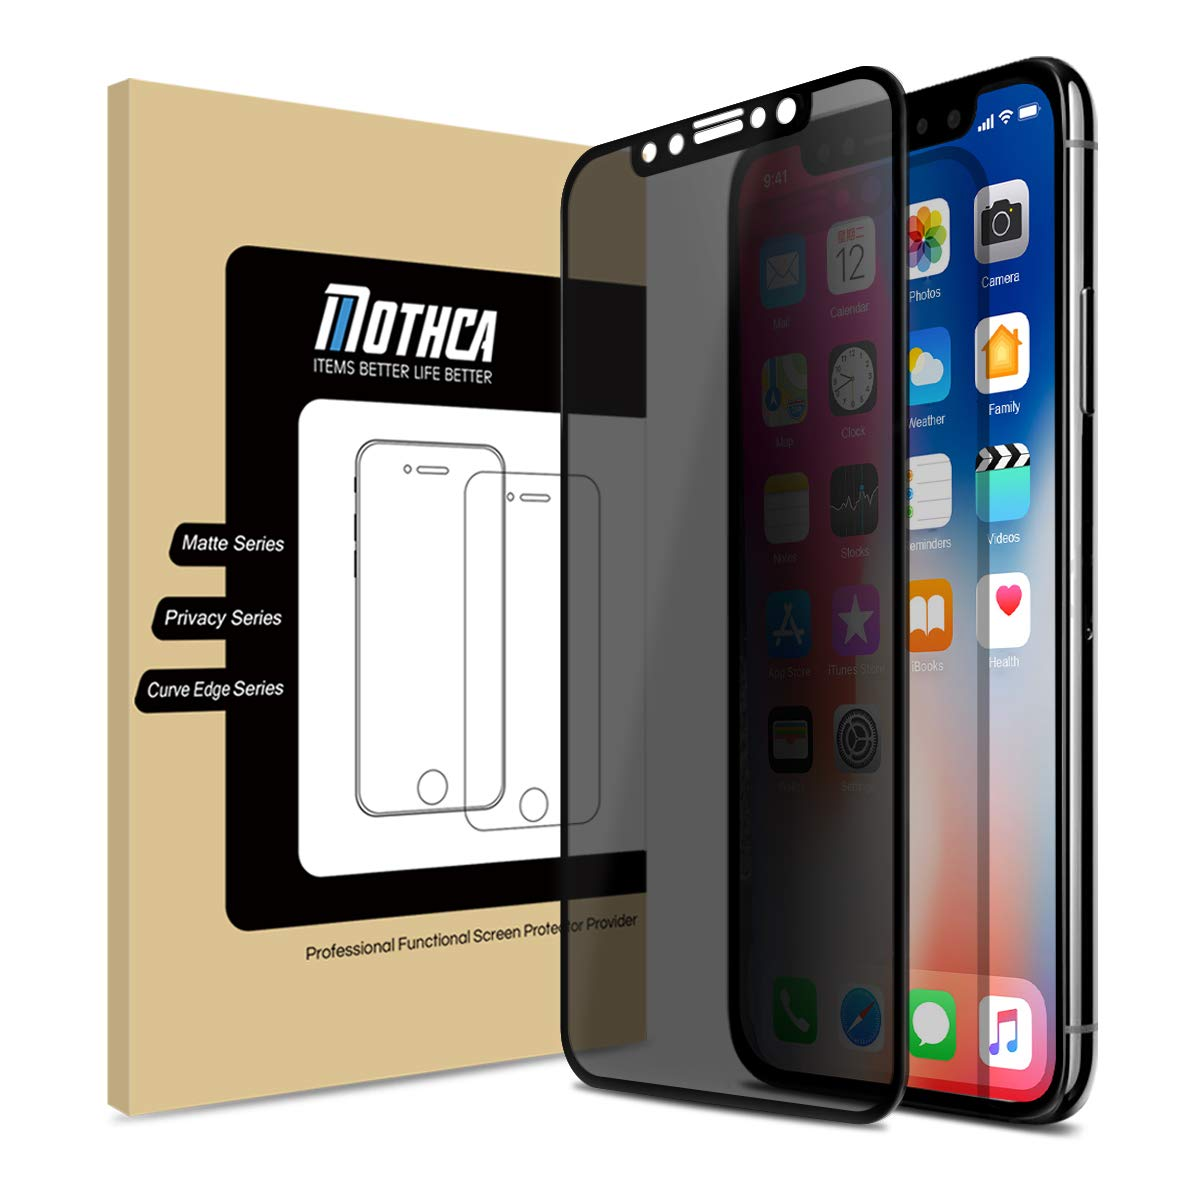 Mothca Screen Protector Privacy for iPhone 11/XR Tempered Glass Full Cover Case Friendly Anti-Spy Film 9H Hardness Glass Screen Guard Anti-Scratch Easy Install Bubble Free